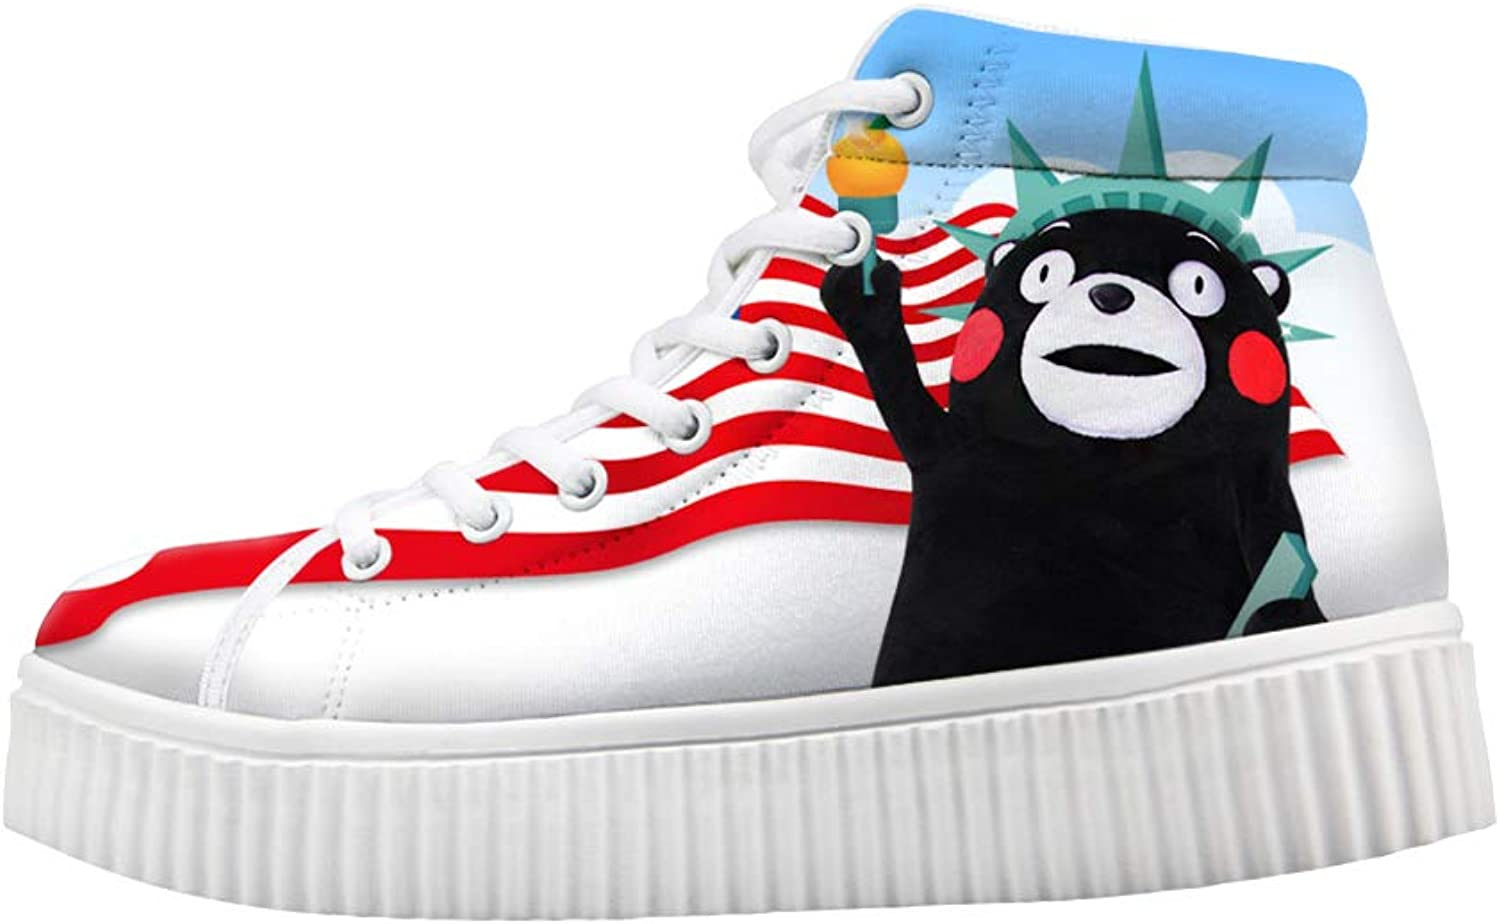 Owaheson Platform Lace up Sneaker Casual Chunky Walking shoes High Top Women American Flag Kumamoto Bear Statue of Liberty